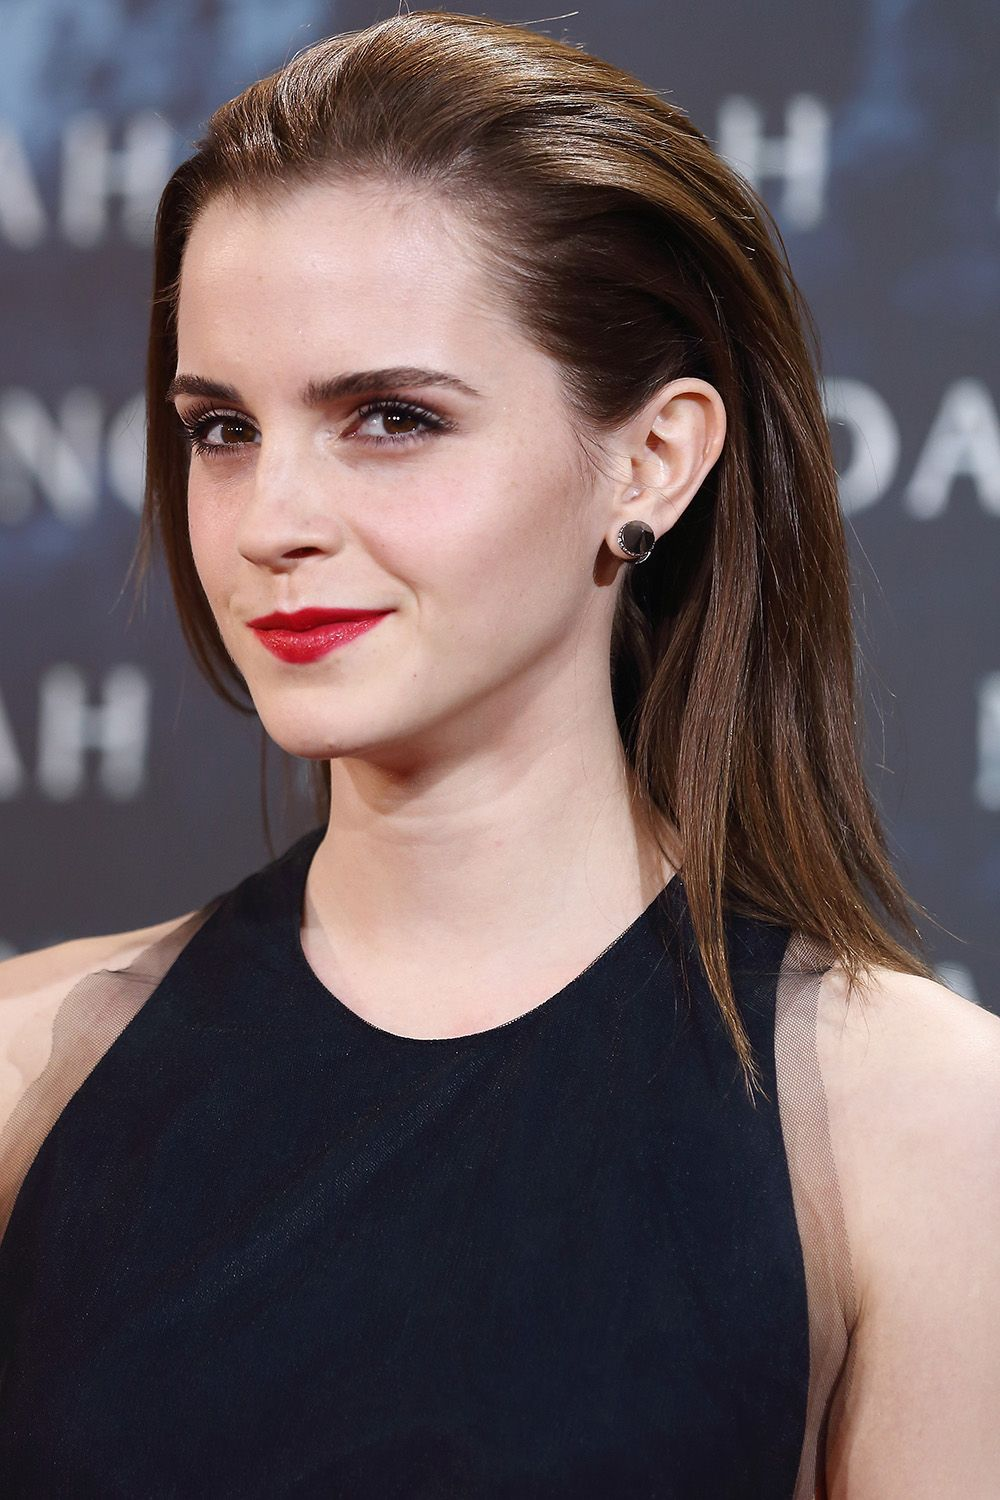 emma watson's best hairstyles - emma watson haircuts and hair color